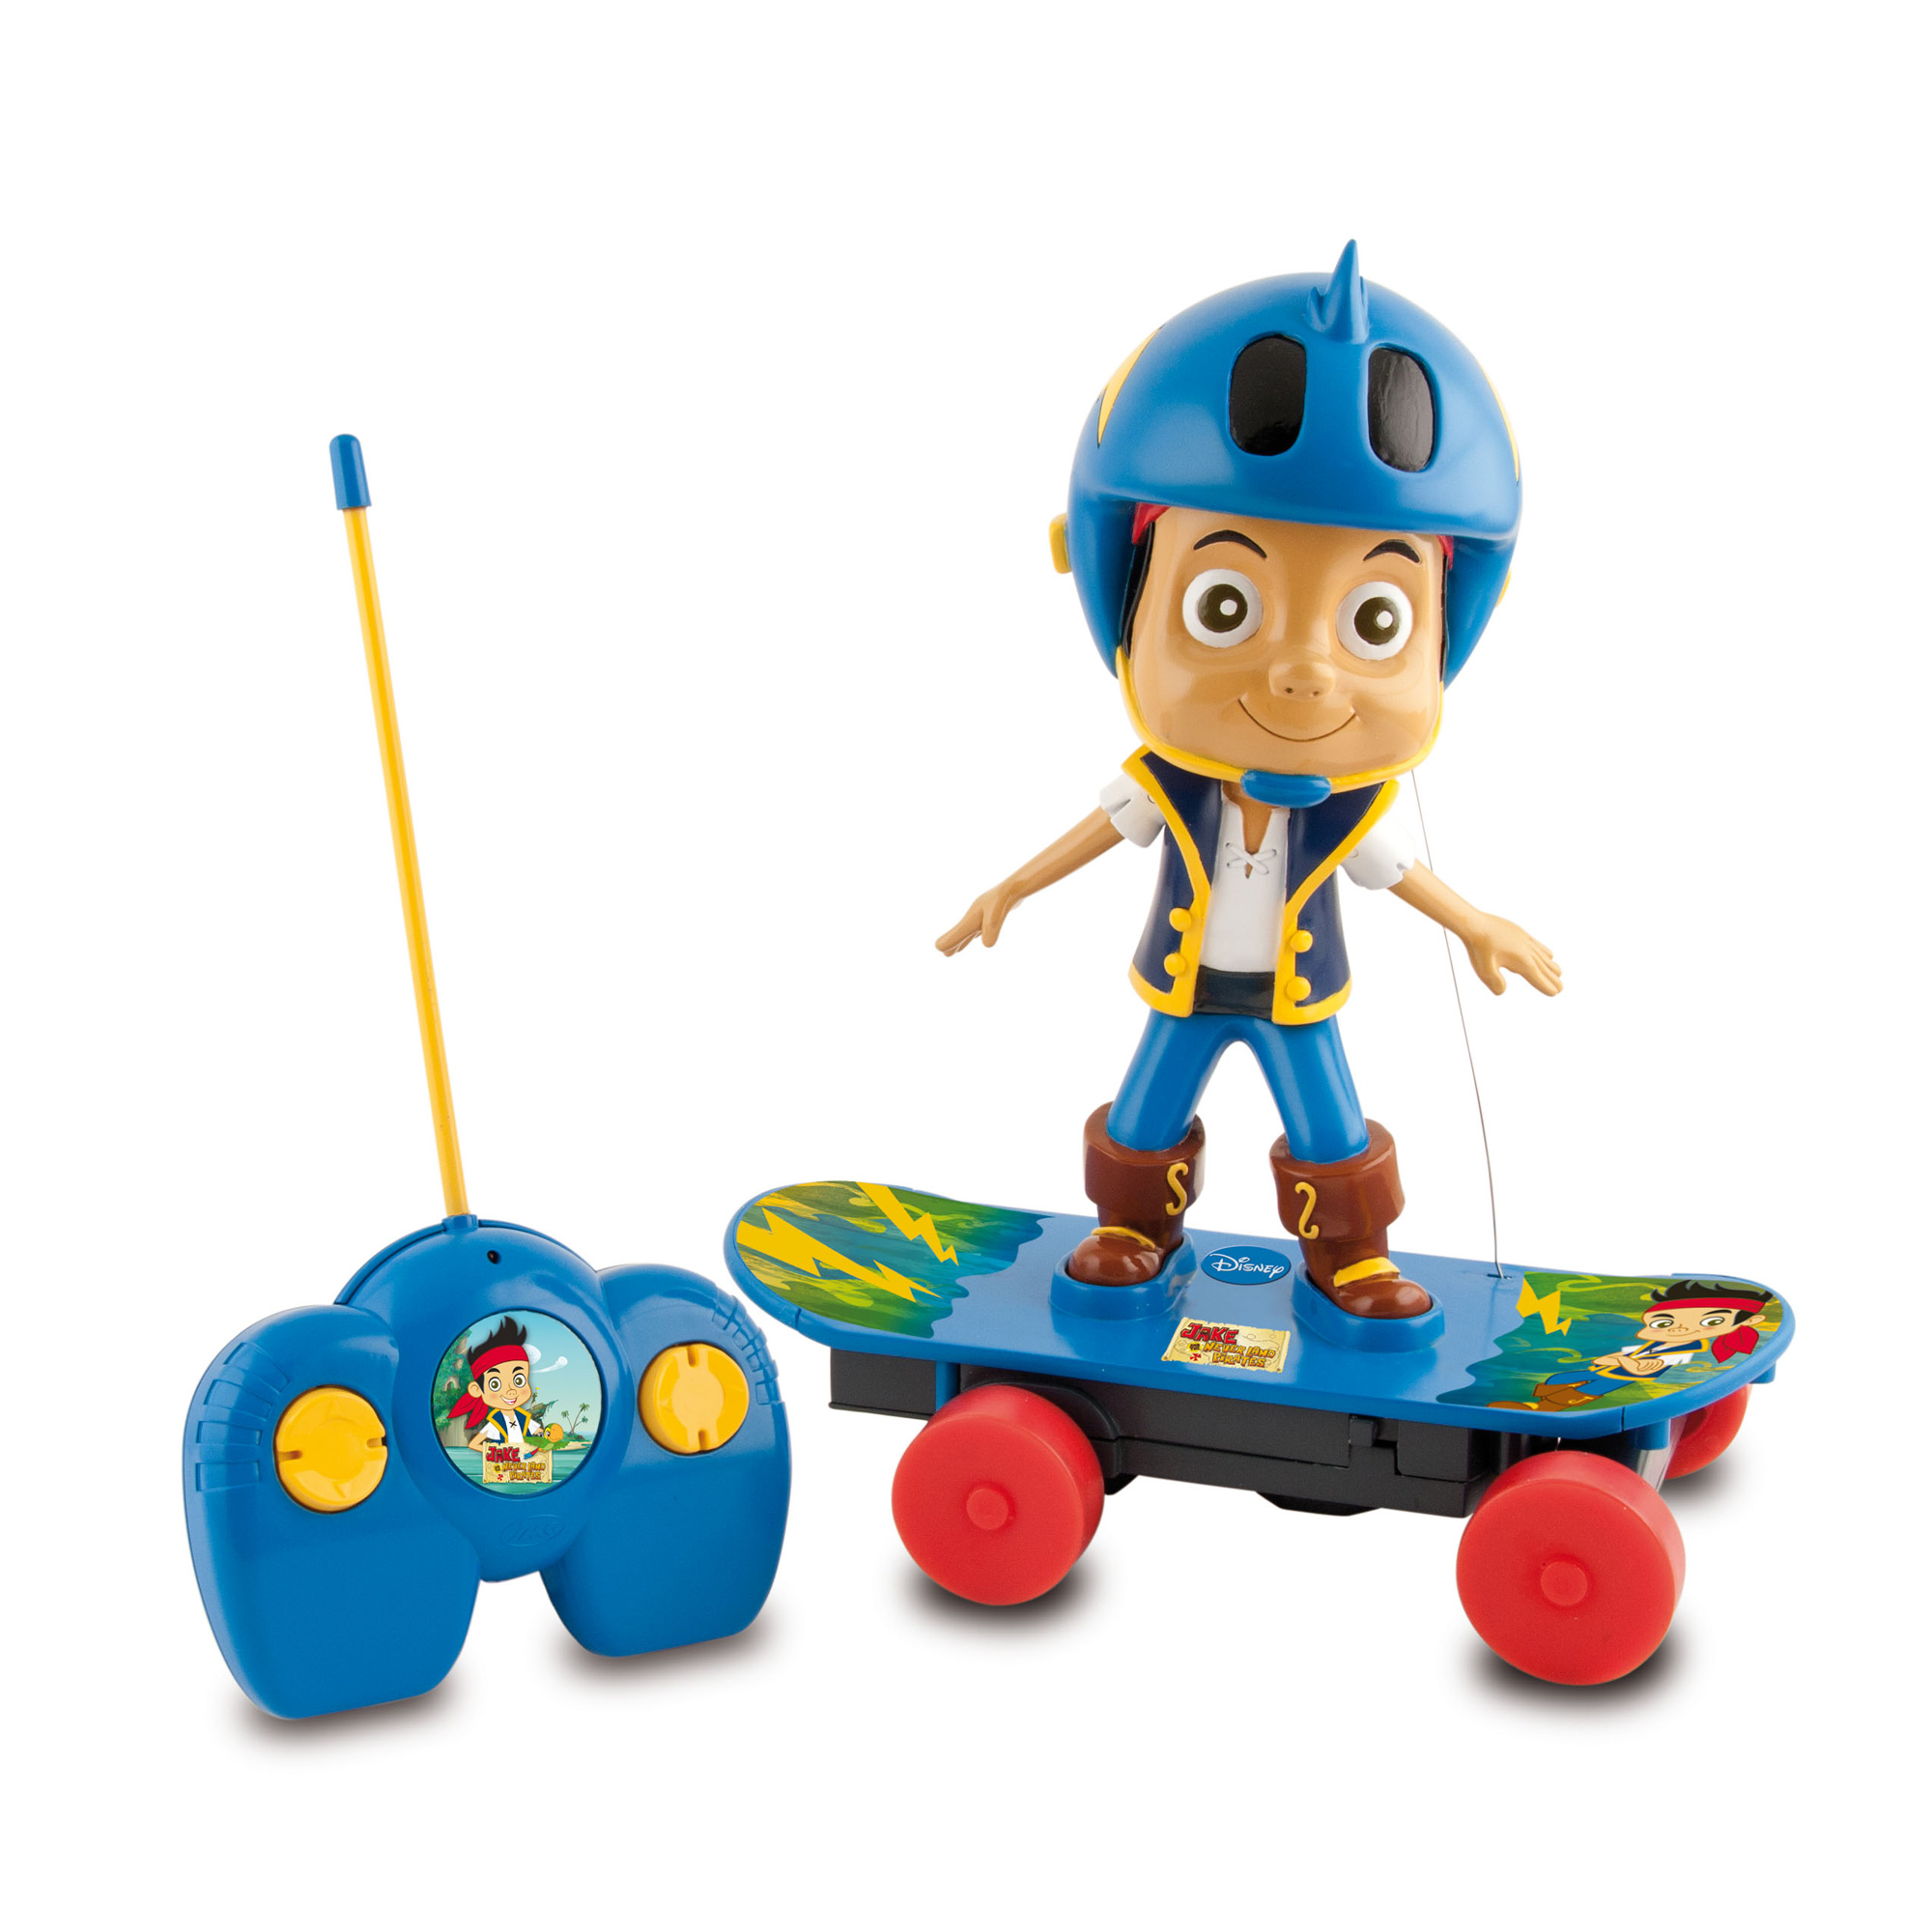 Picture of Disney Jake & The Neverland Pirates RC Skate Board